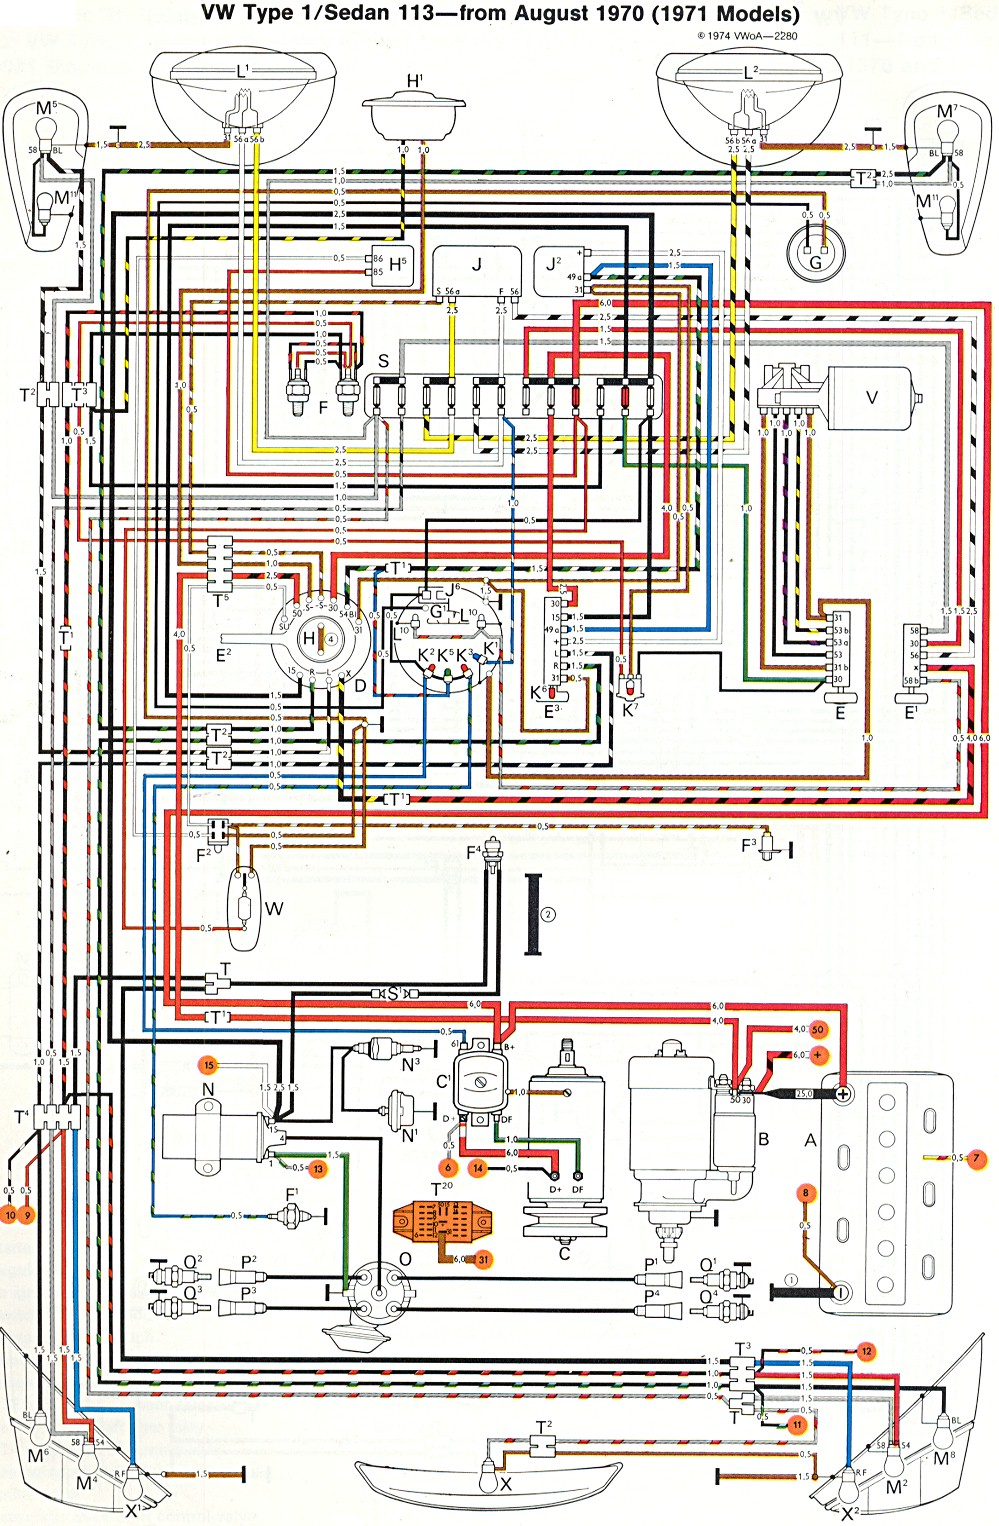 bug_super_71 71 vw beetle wiring diagram 71 wiring diagrams instruction 2001 vw beetle wiring diagram at mifinder.co